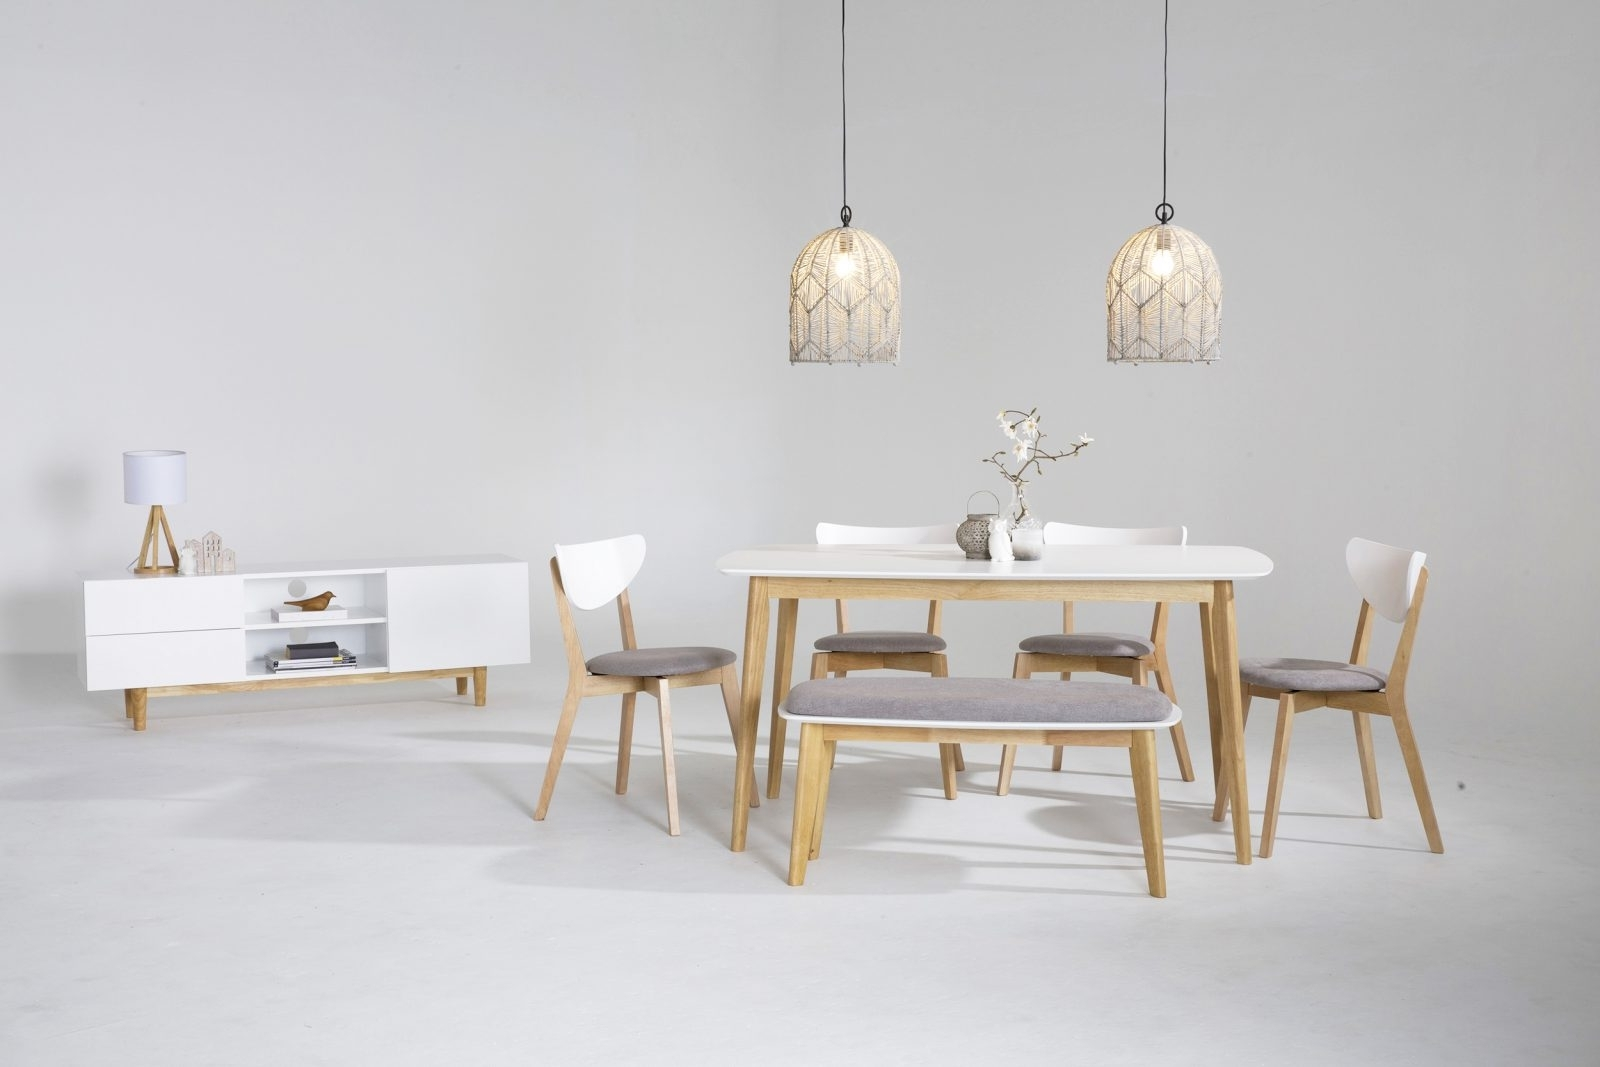 Scandinavian Dining Tables And Chairs Pertaining To Well Liked Scandinavian Dining Room Furniture Ideas (View 20 of 25)